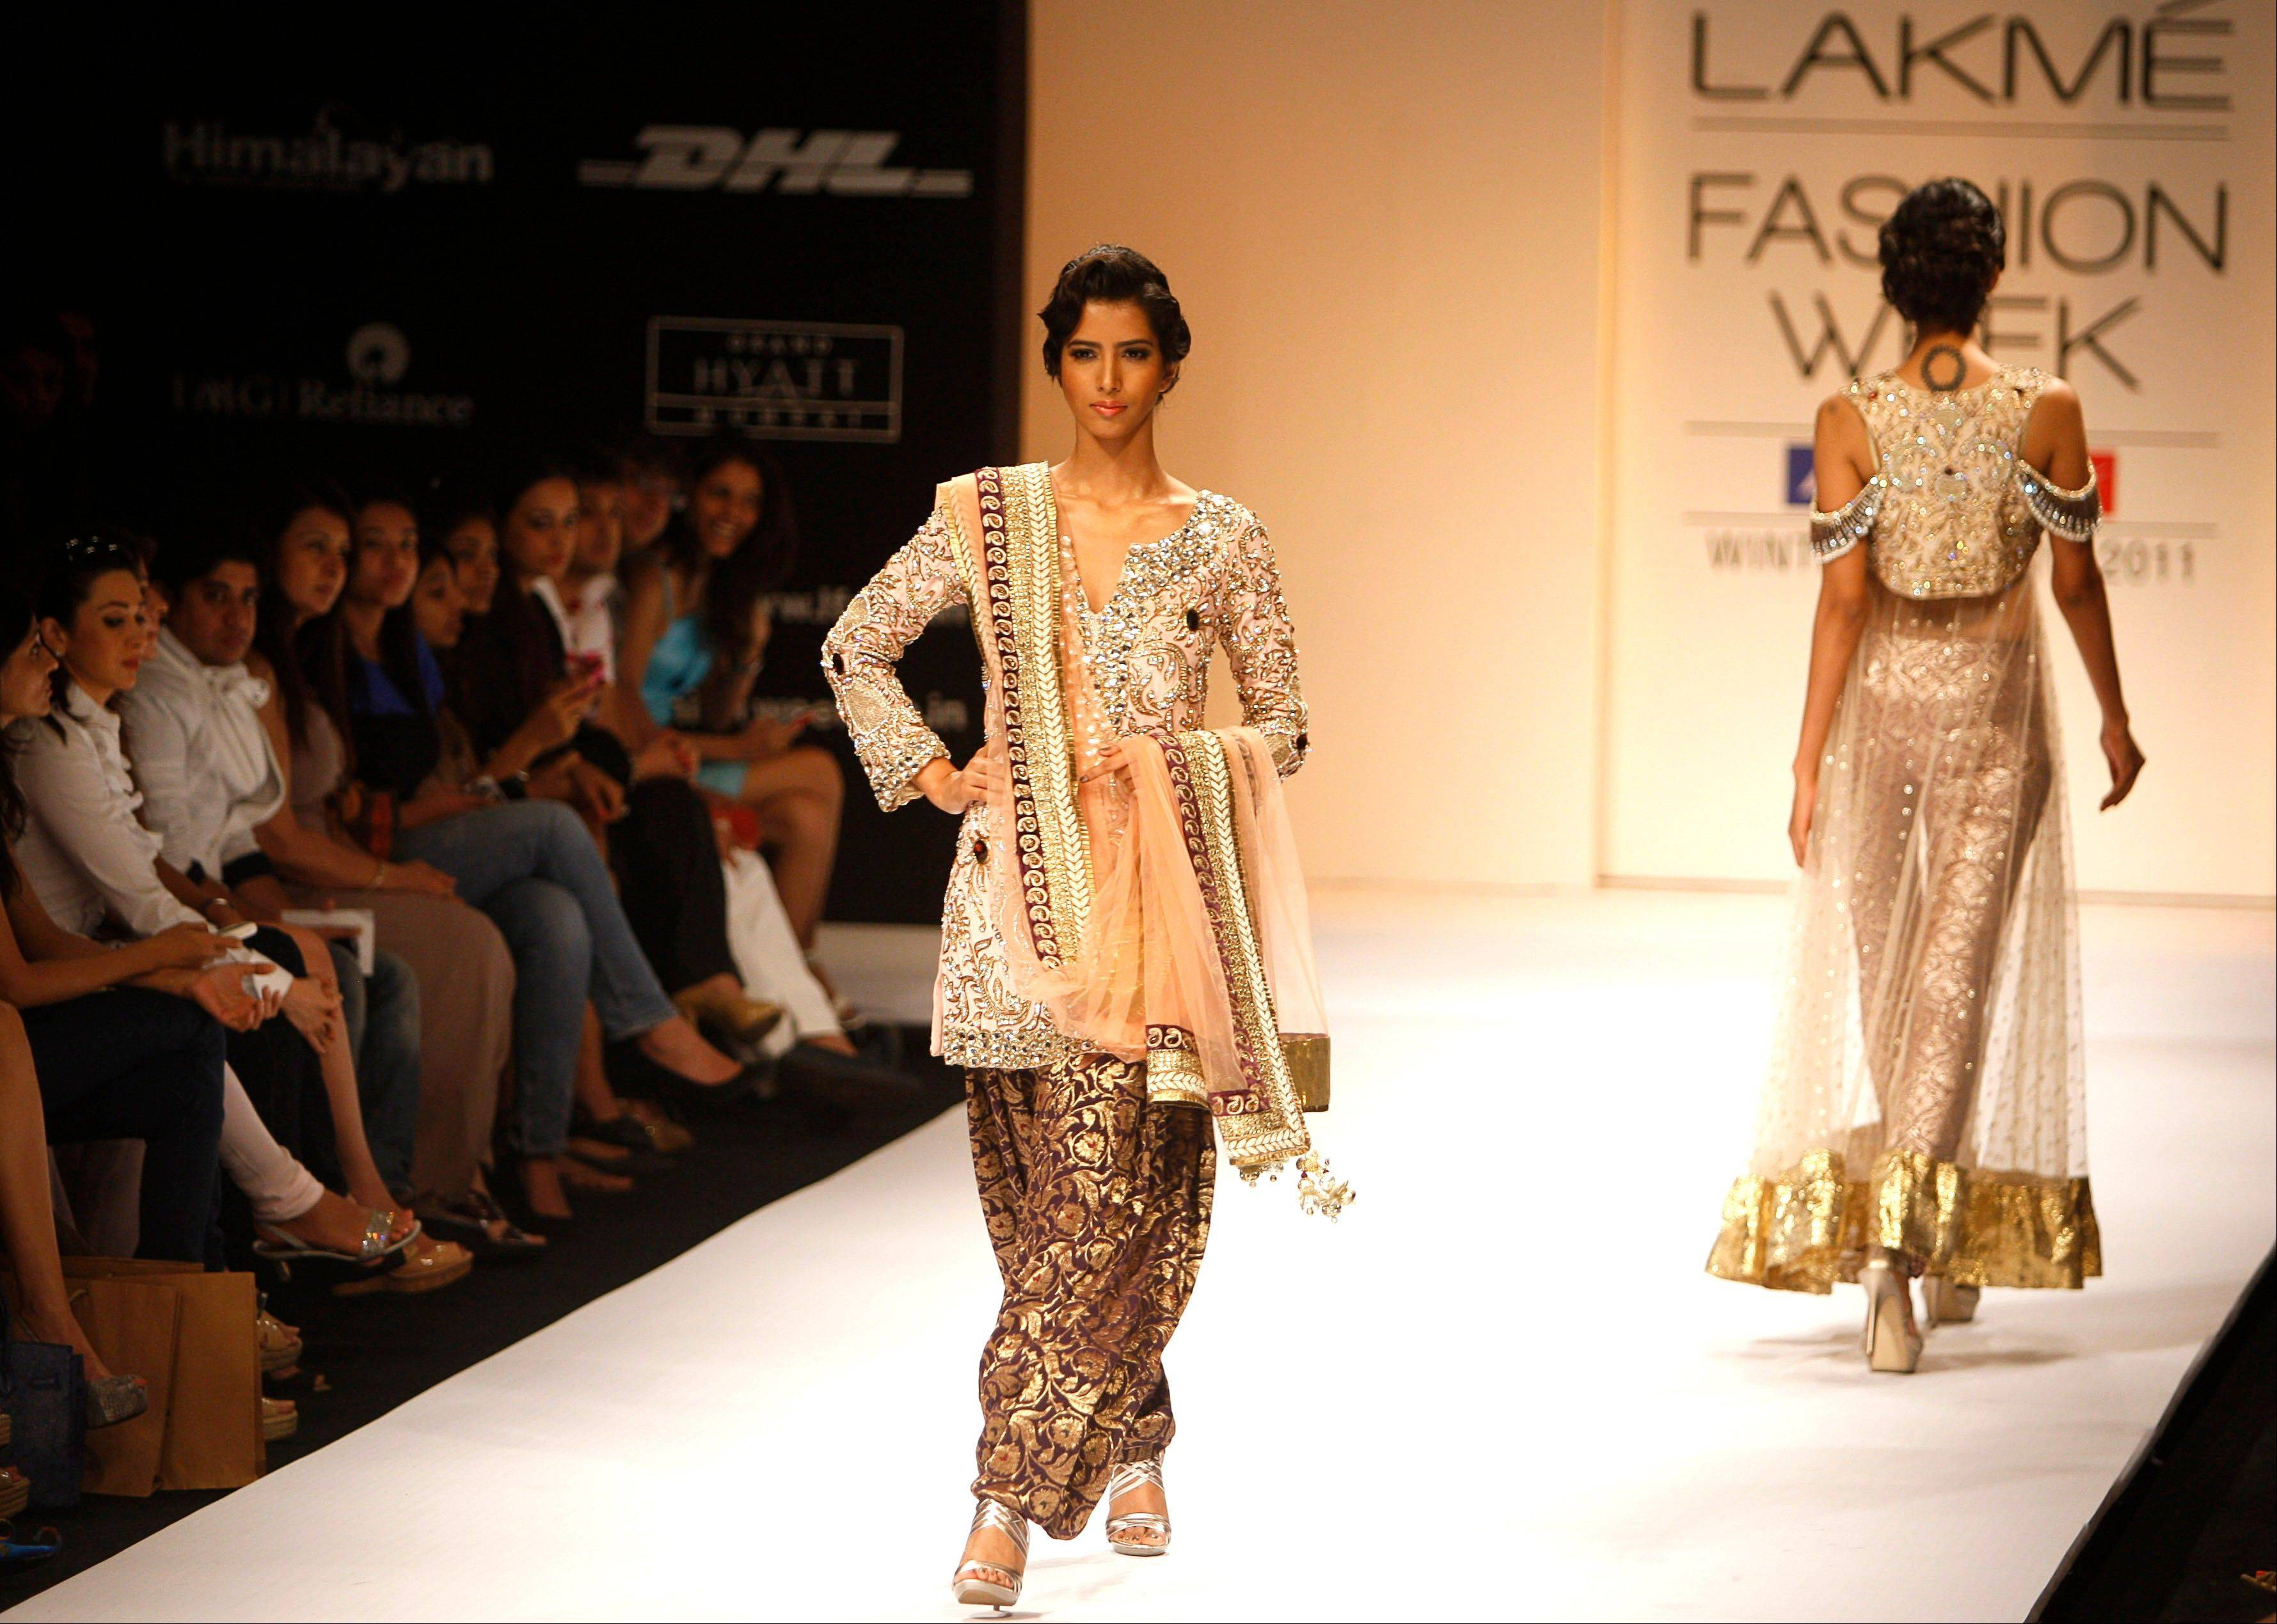 Indian models display creations by designer Payal Singhal during the Lakme Fashion Week in Mumbai, India.